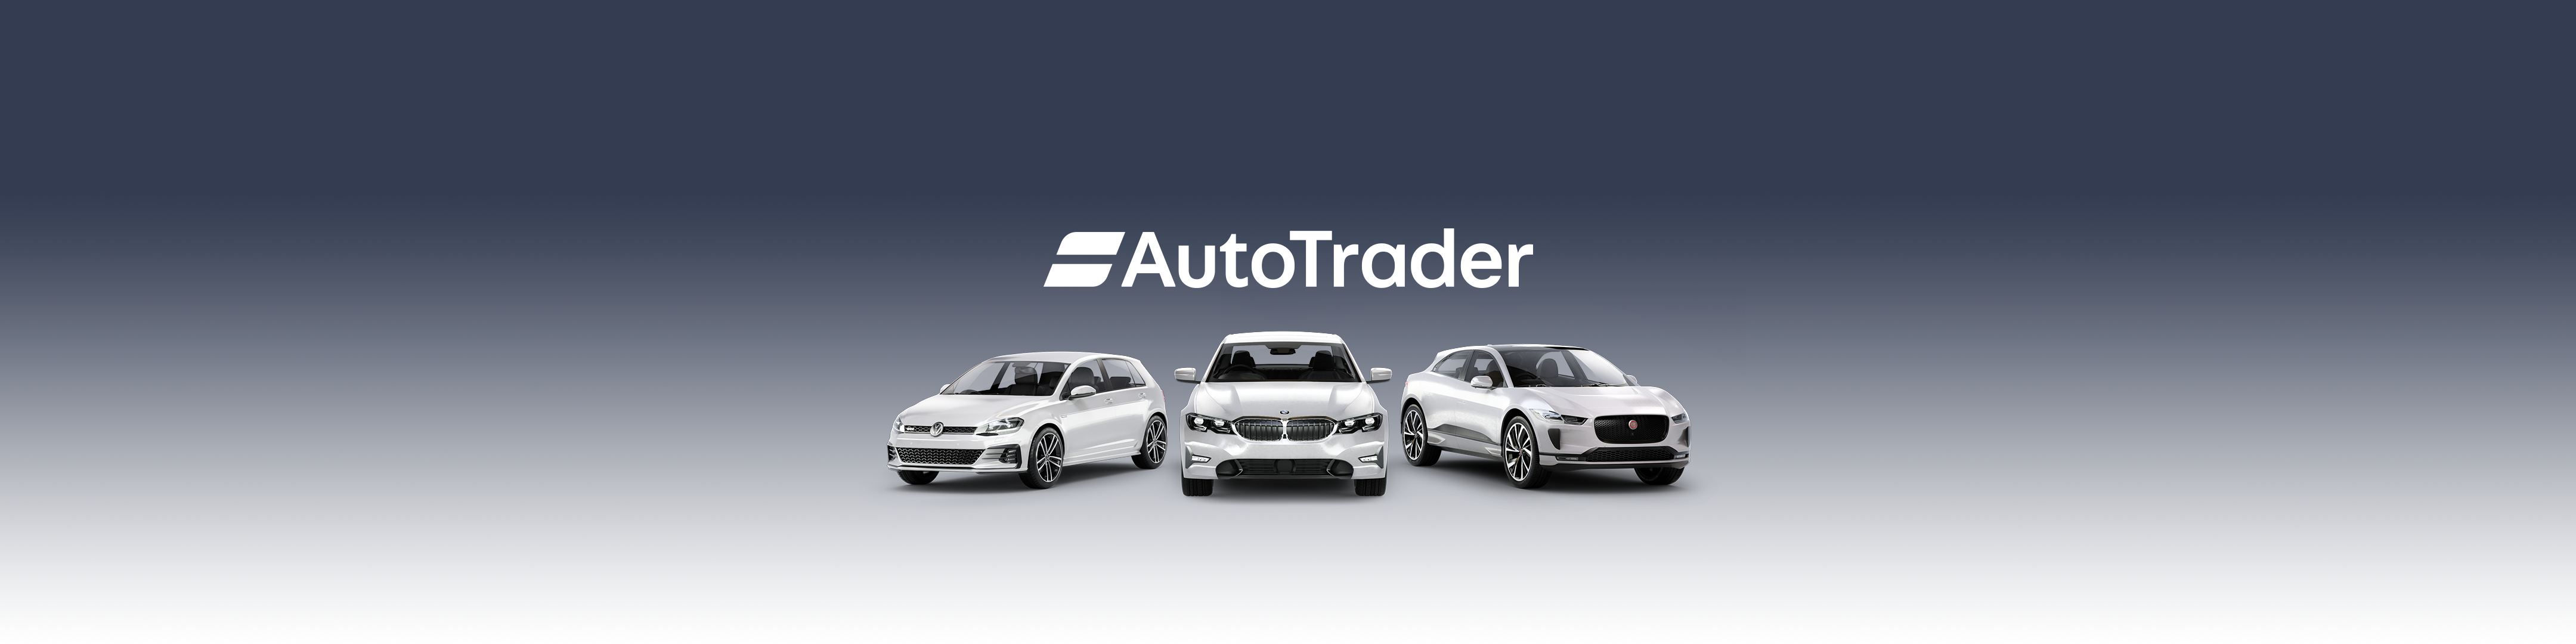 Auto Trader: Buy and sell cars - Revenue & Download estimates